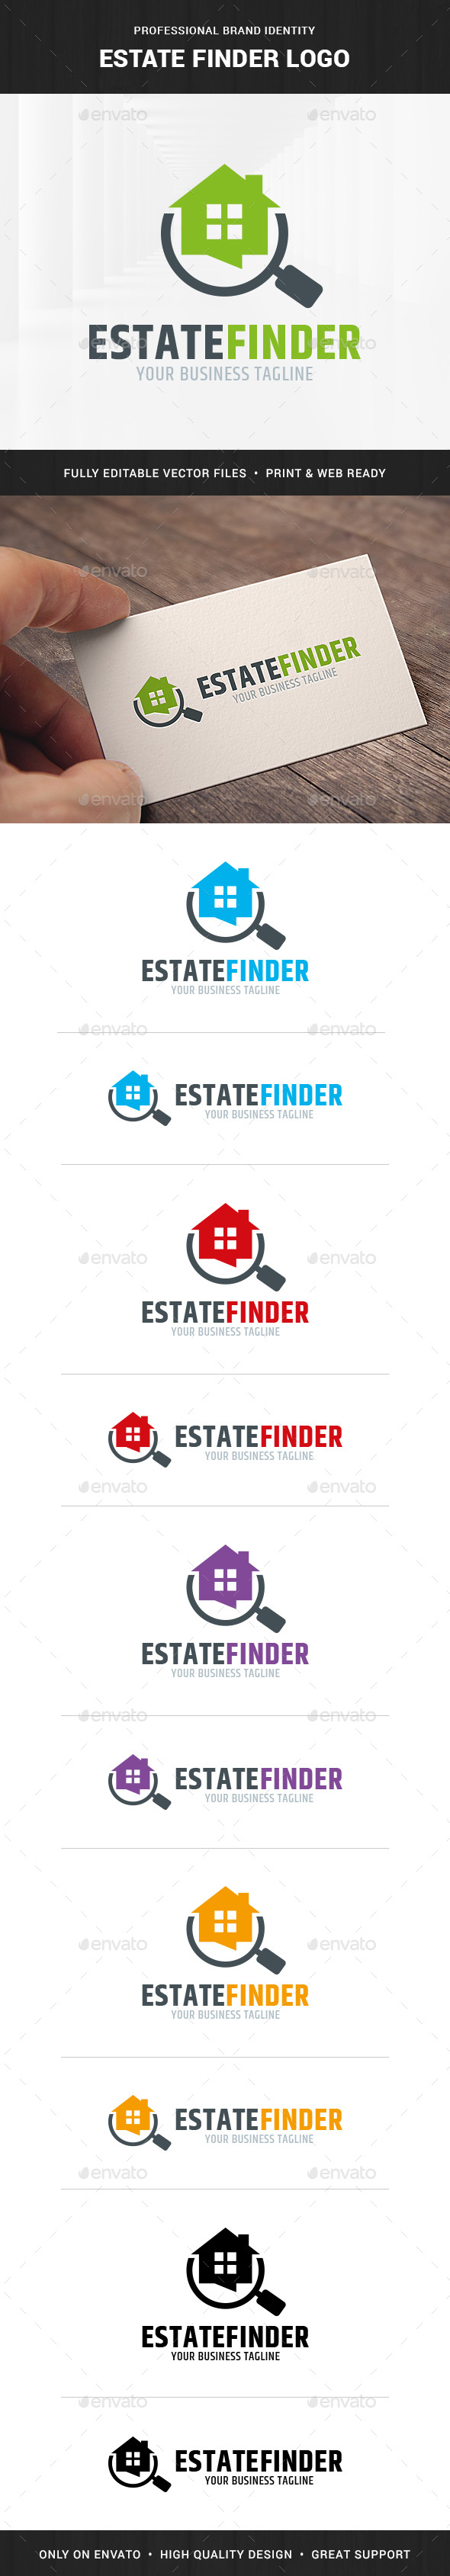 Estate Finder Logo Template - Buildings Logo Templates